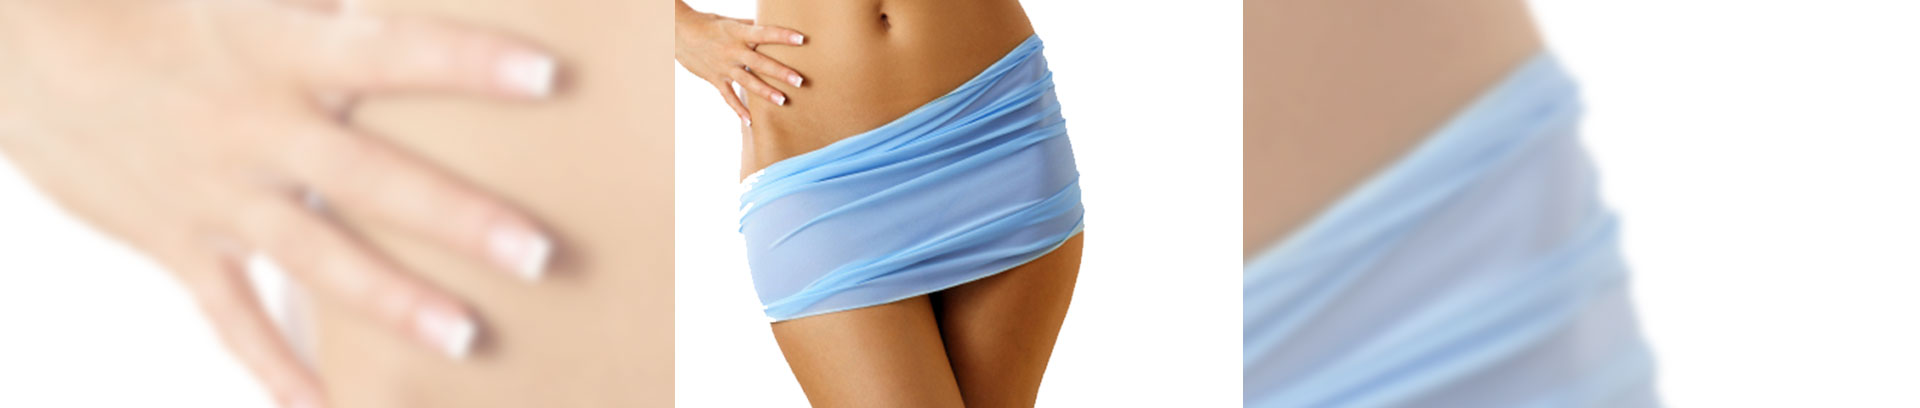 CoolSculpting fat-freezing procedure